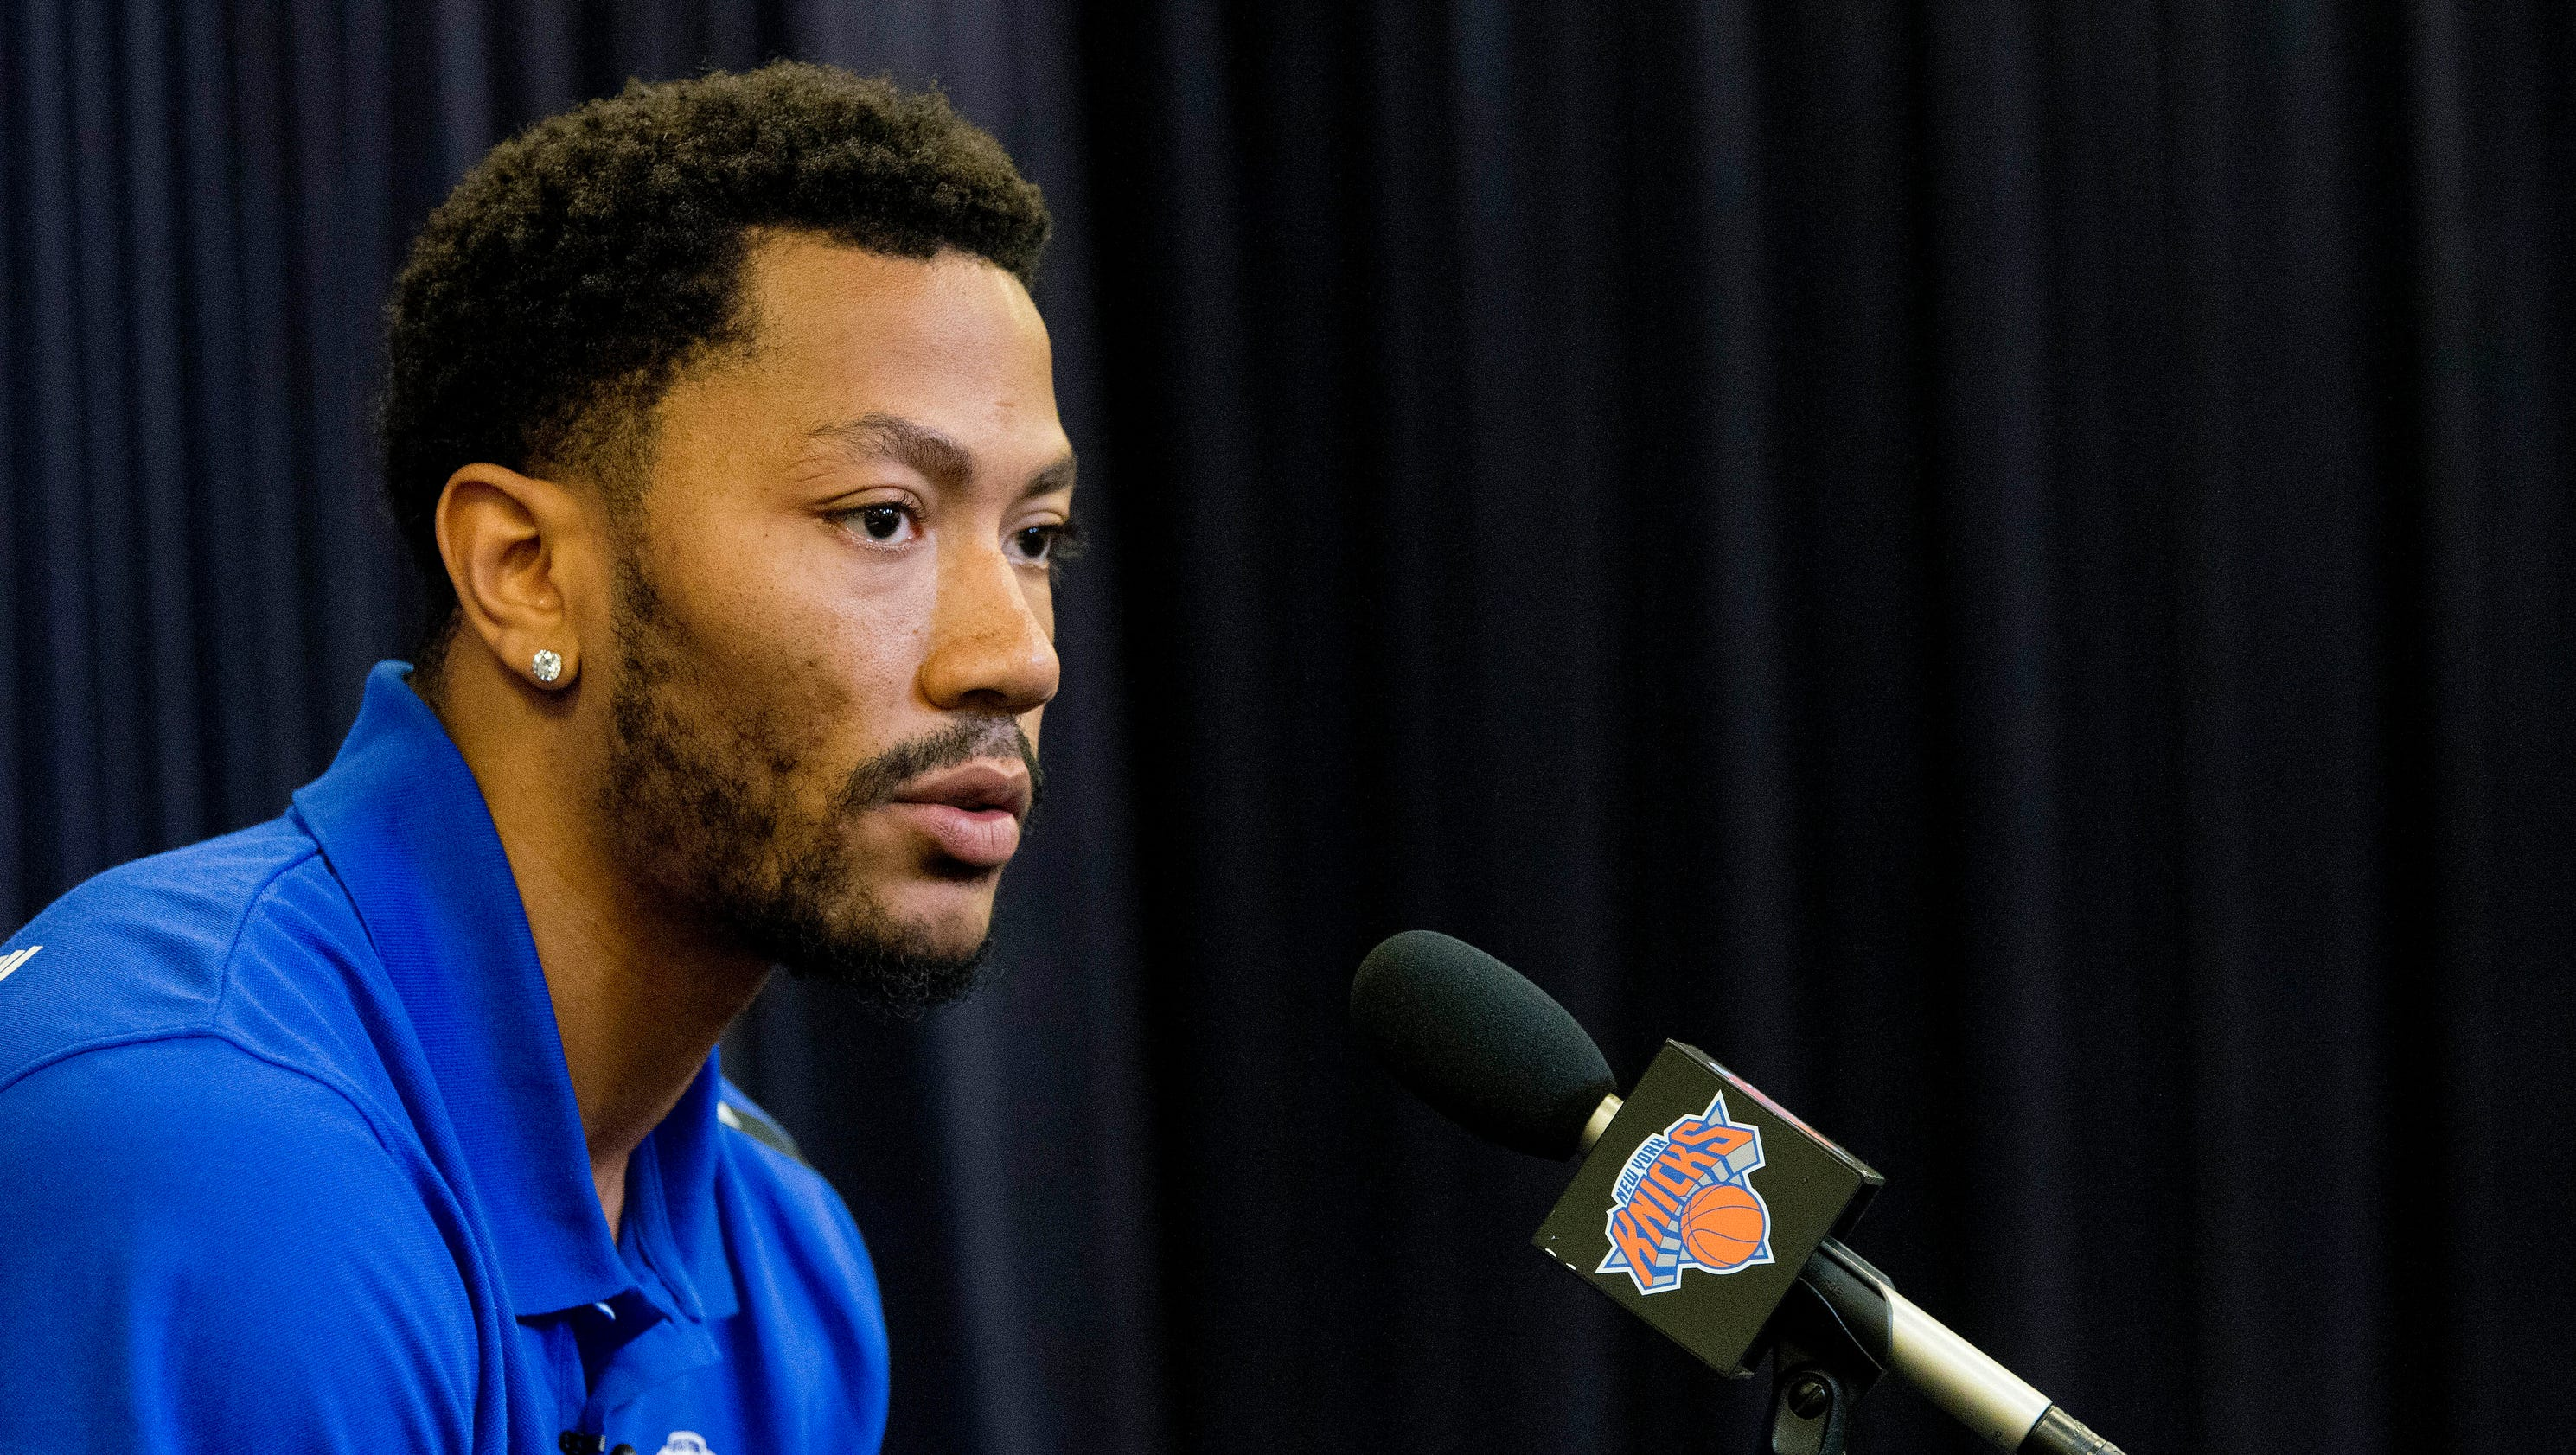 Derrick Rose 'not worried' about allegations, LAPD investigation